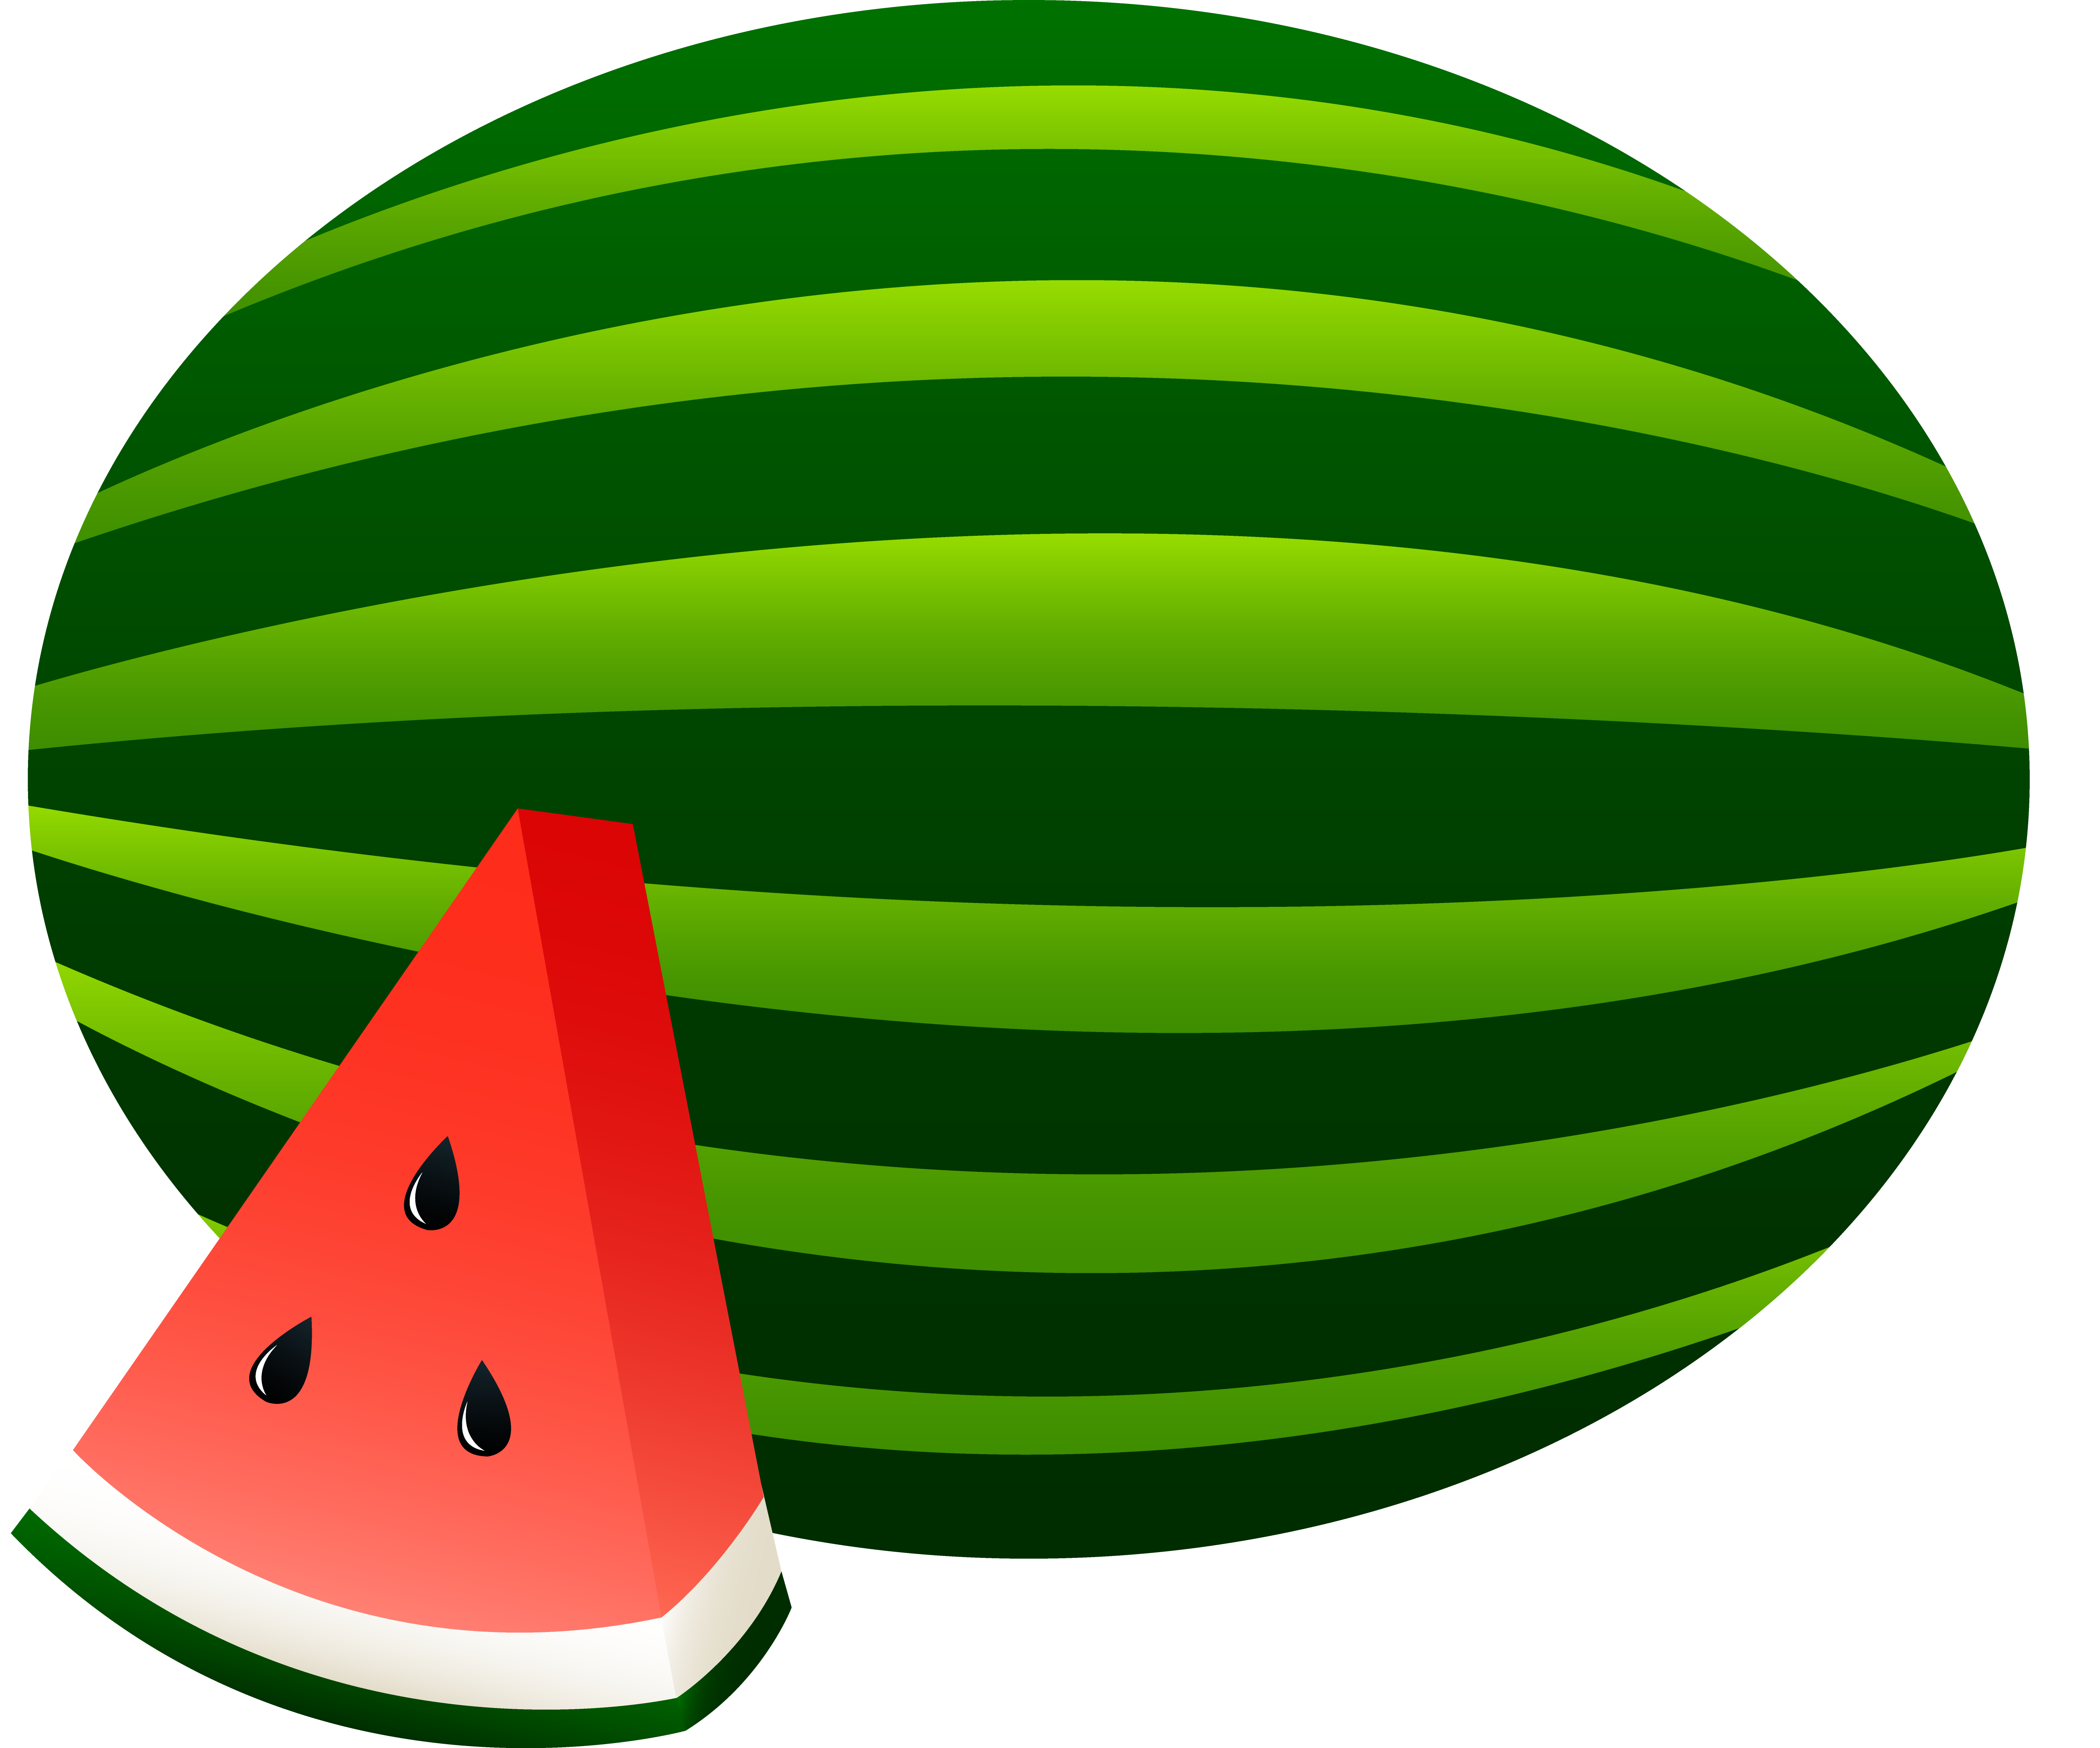 Fruit clipart bucket. And vegetables drawings panda